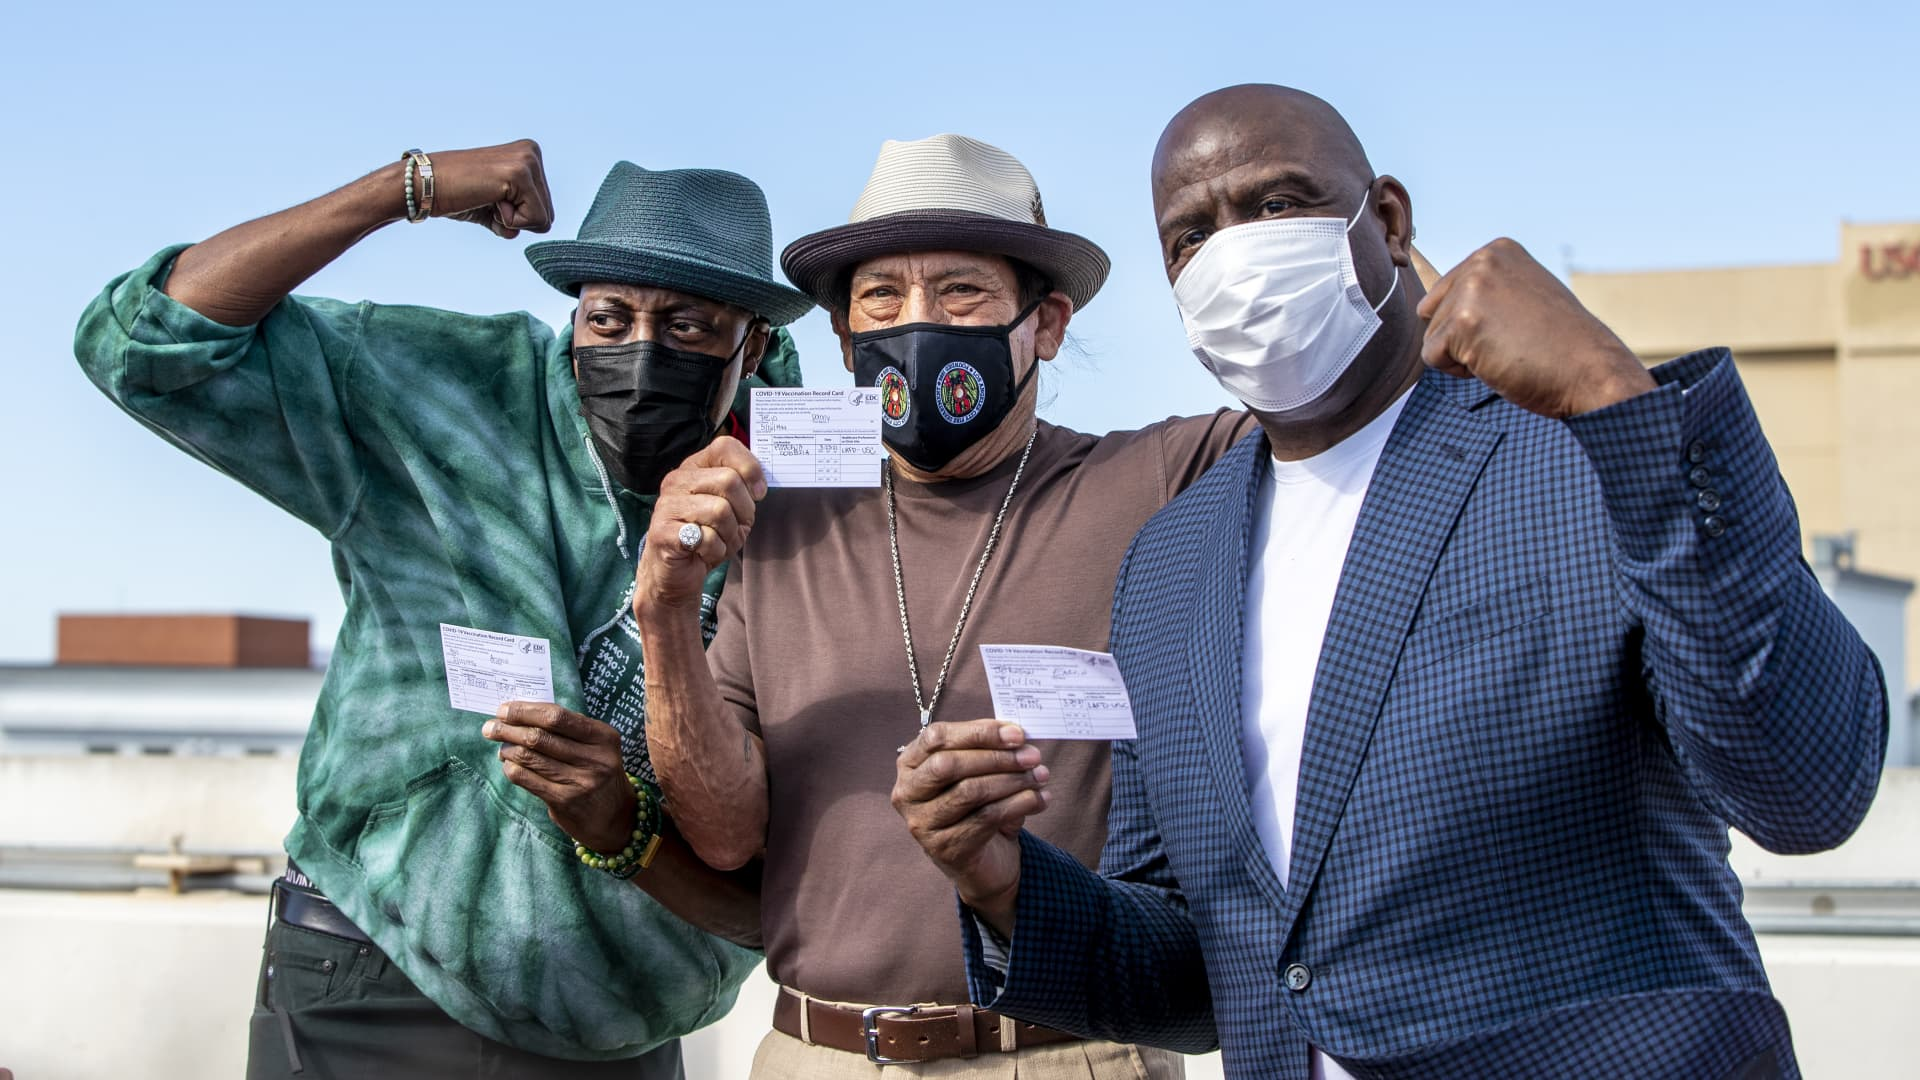 Arsenio Hall, left, Danny Trejo and Magic Johnson pose for a photo after they all got vaccine shots on the rooftop of parking structure at USC as a part of a vaccination awareness event at USC on March 24, 2021 in Los Angeles, California.